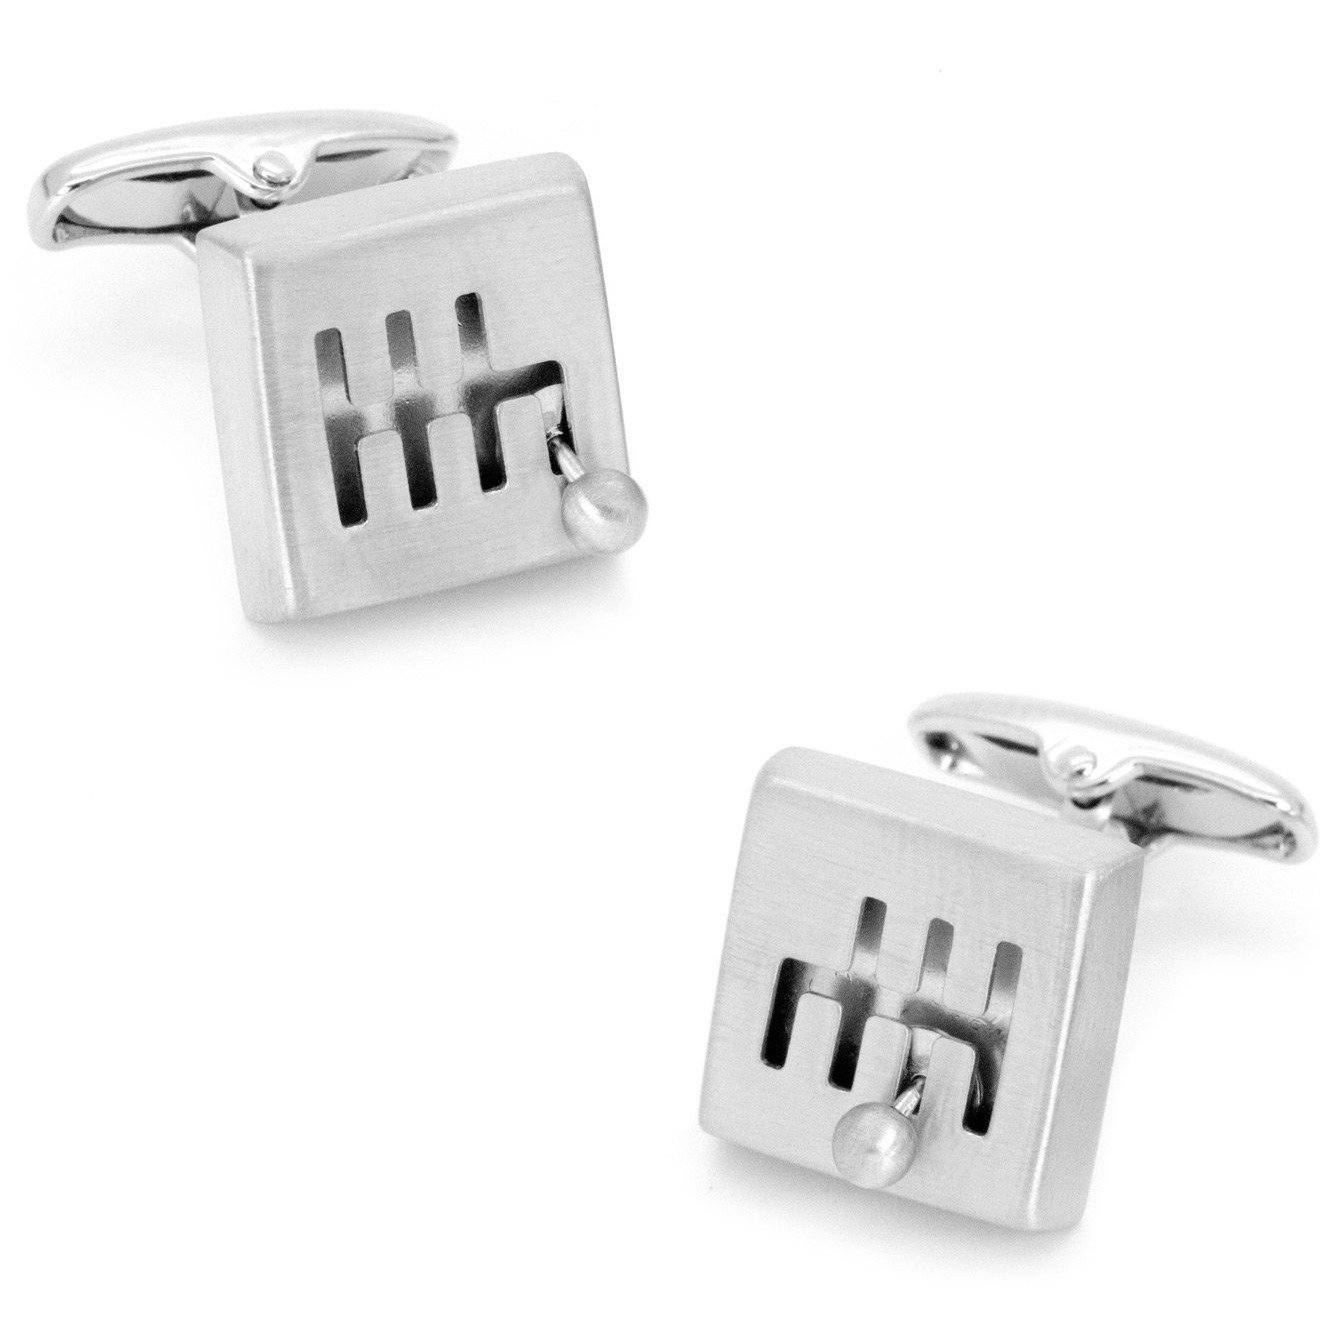 Moving Silver Gear Shift Cufflinks, Novelty Cufflinks, Cuffed.com.au, CL6661, $29.00